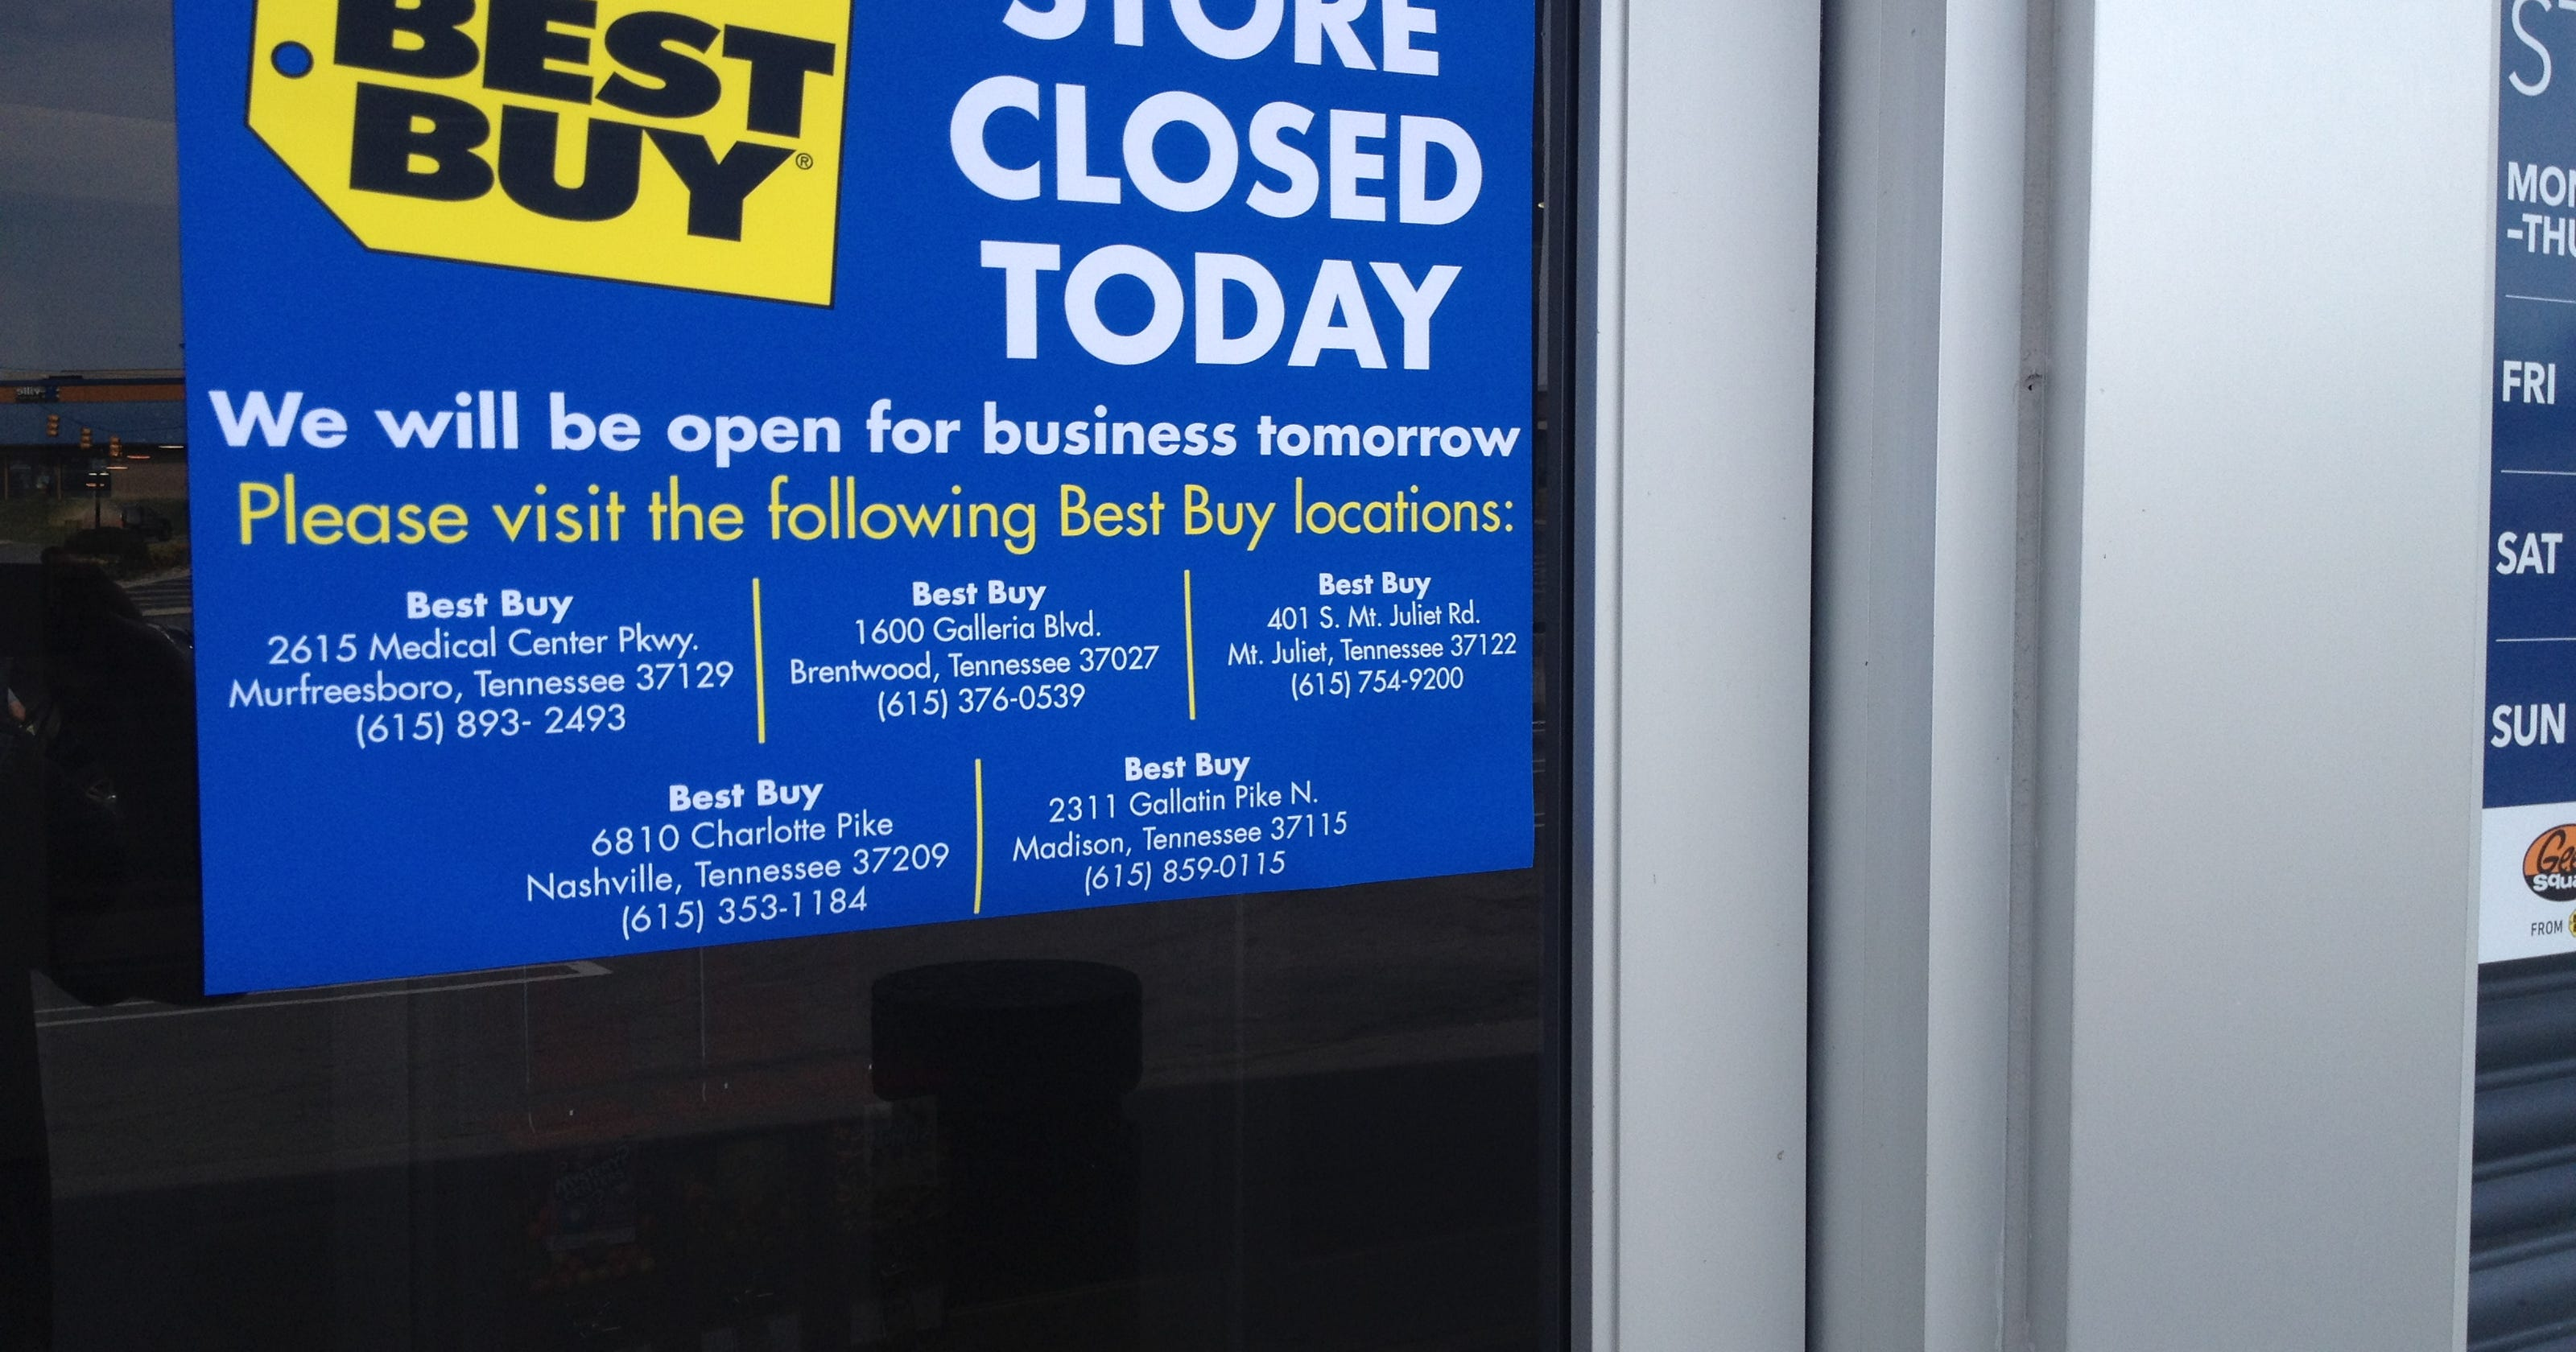 former antioch best buy property sold for 3m - Best Buy Christmas Hours 2014